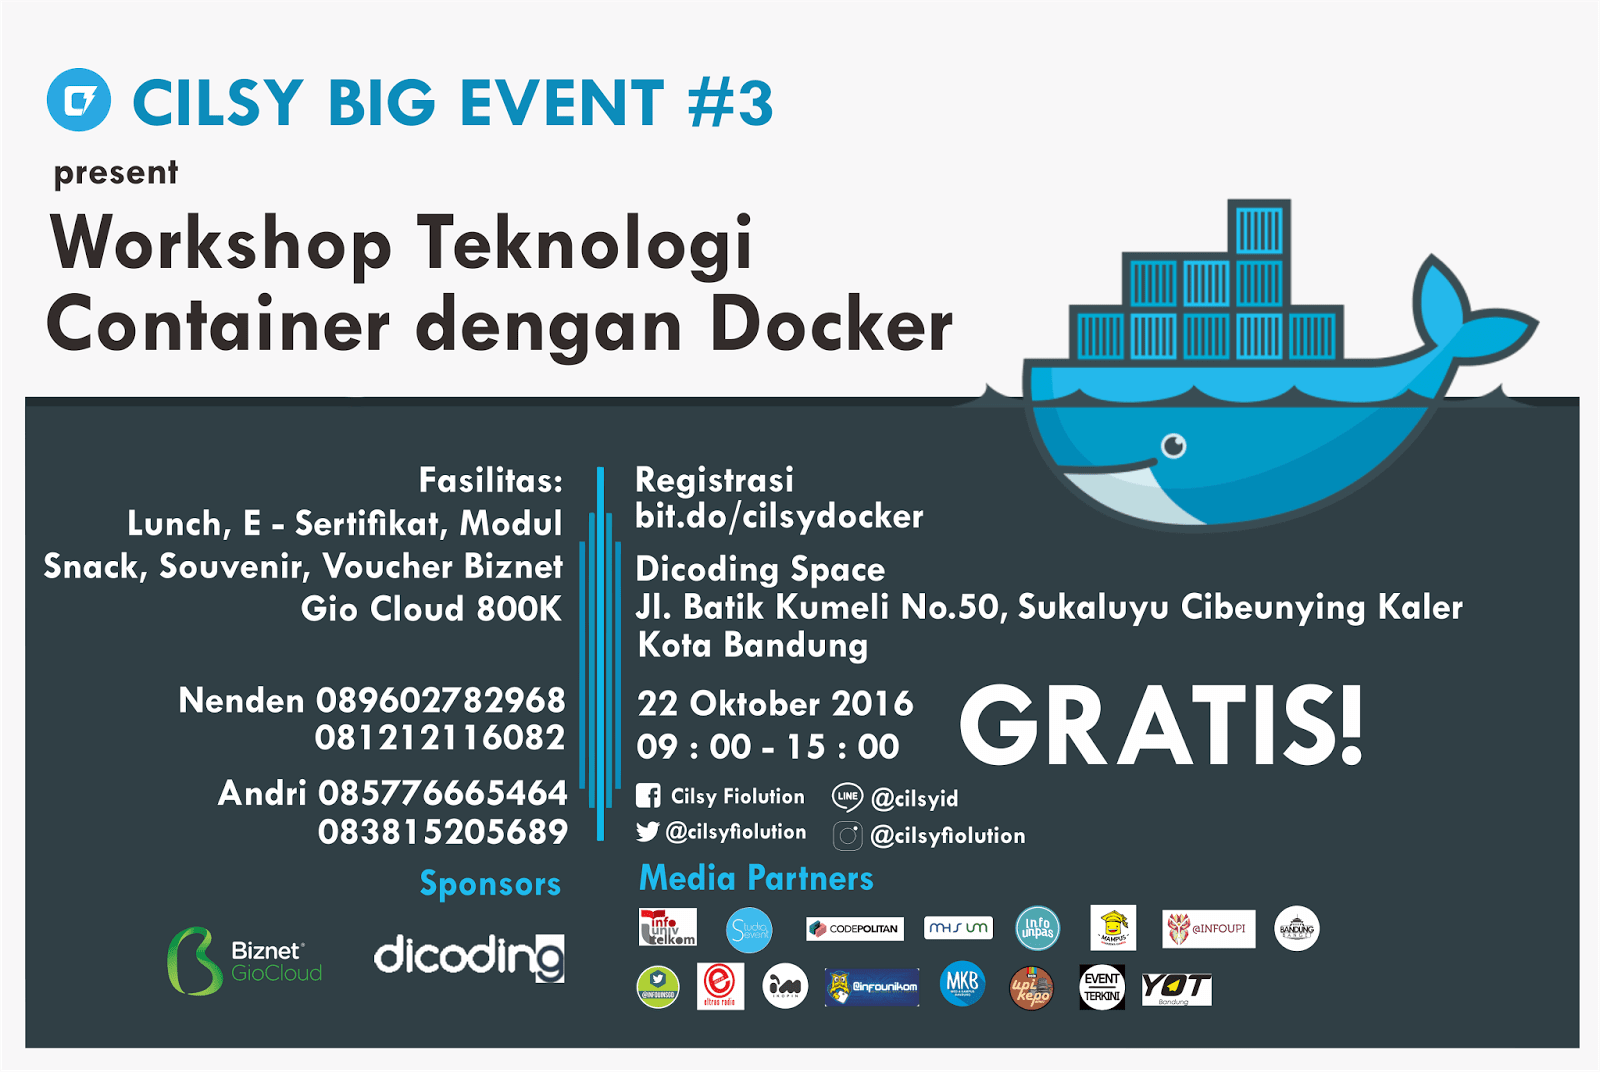 Cilsy Big Event 3 Workshop Teknologi Container dengan Docker